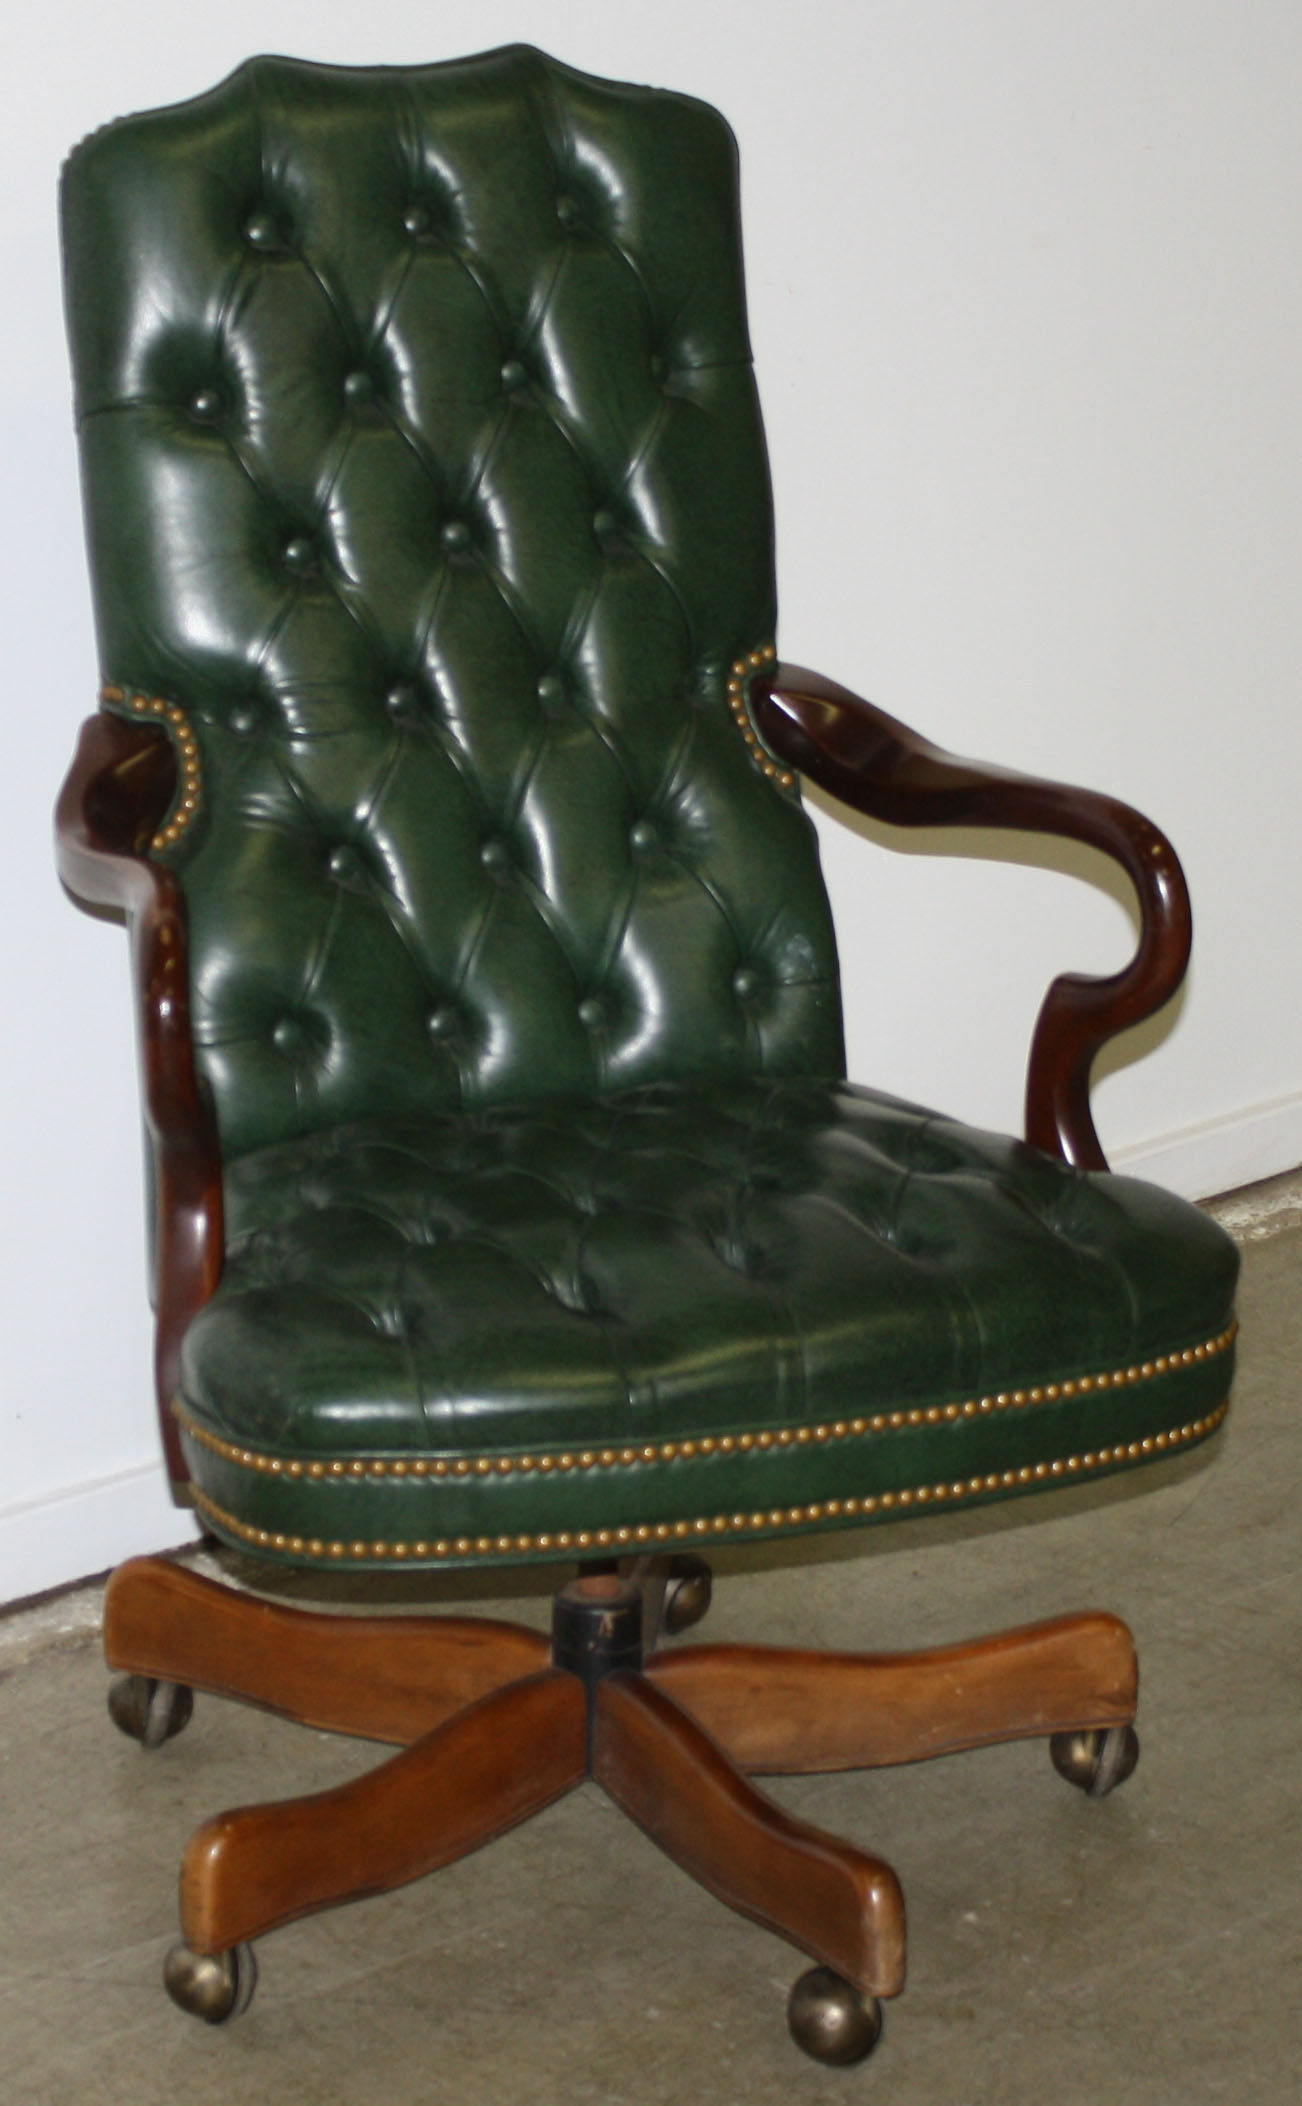 Green tufted office chair JPG